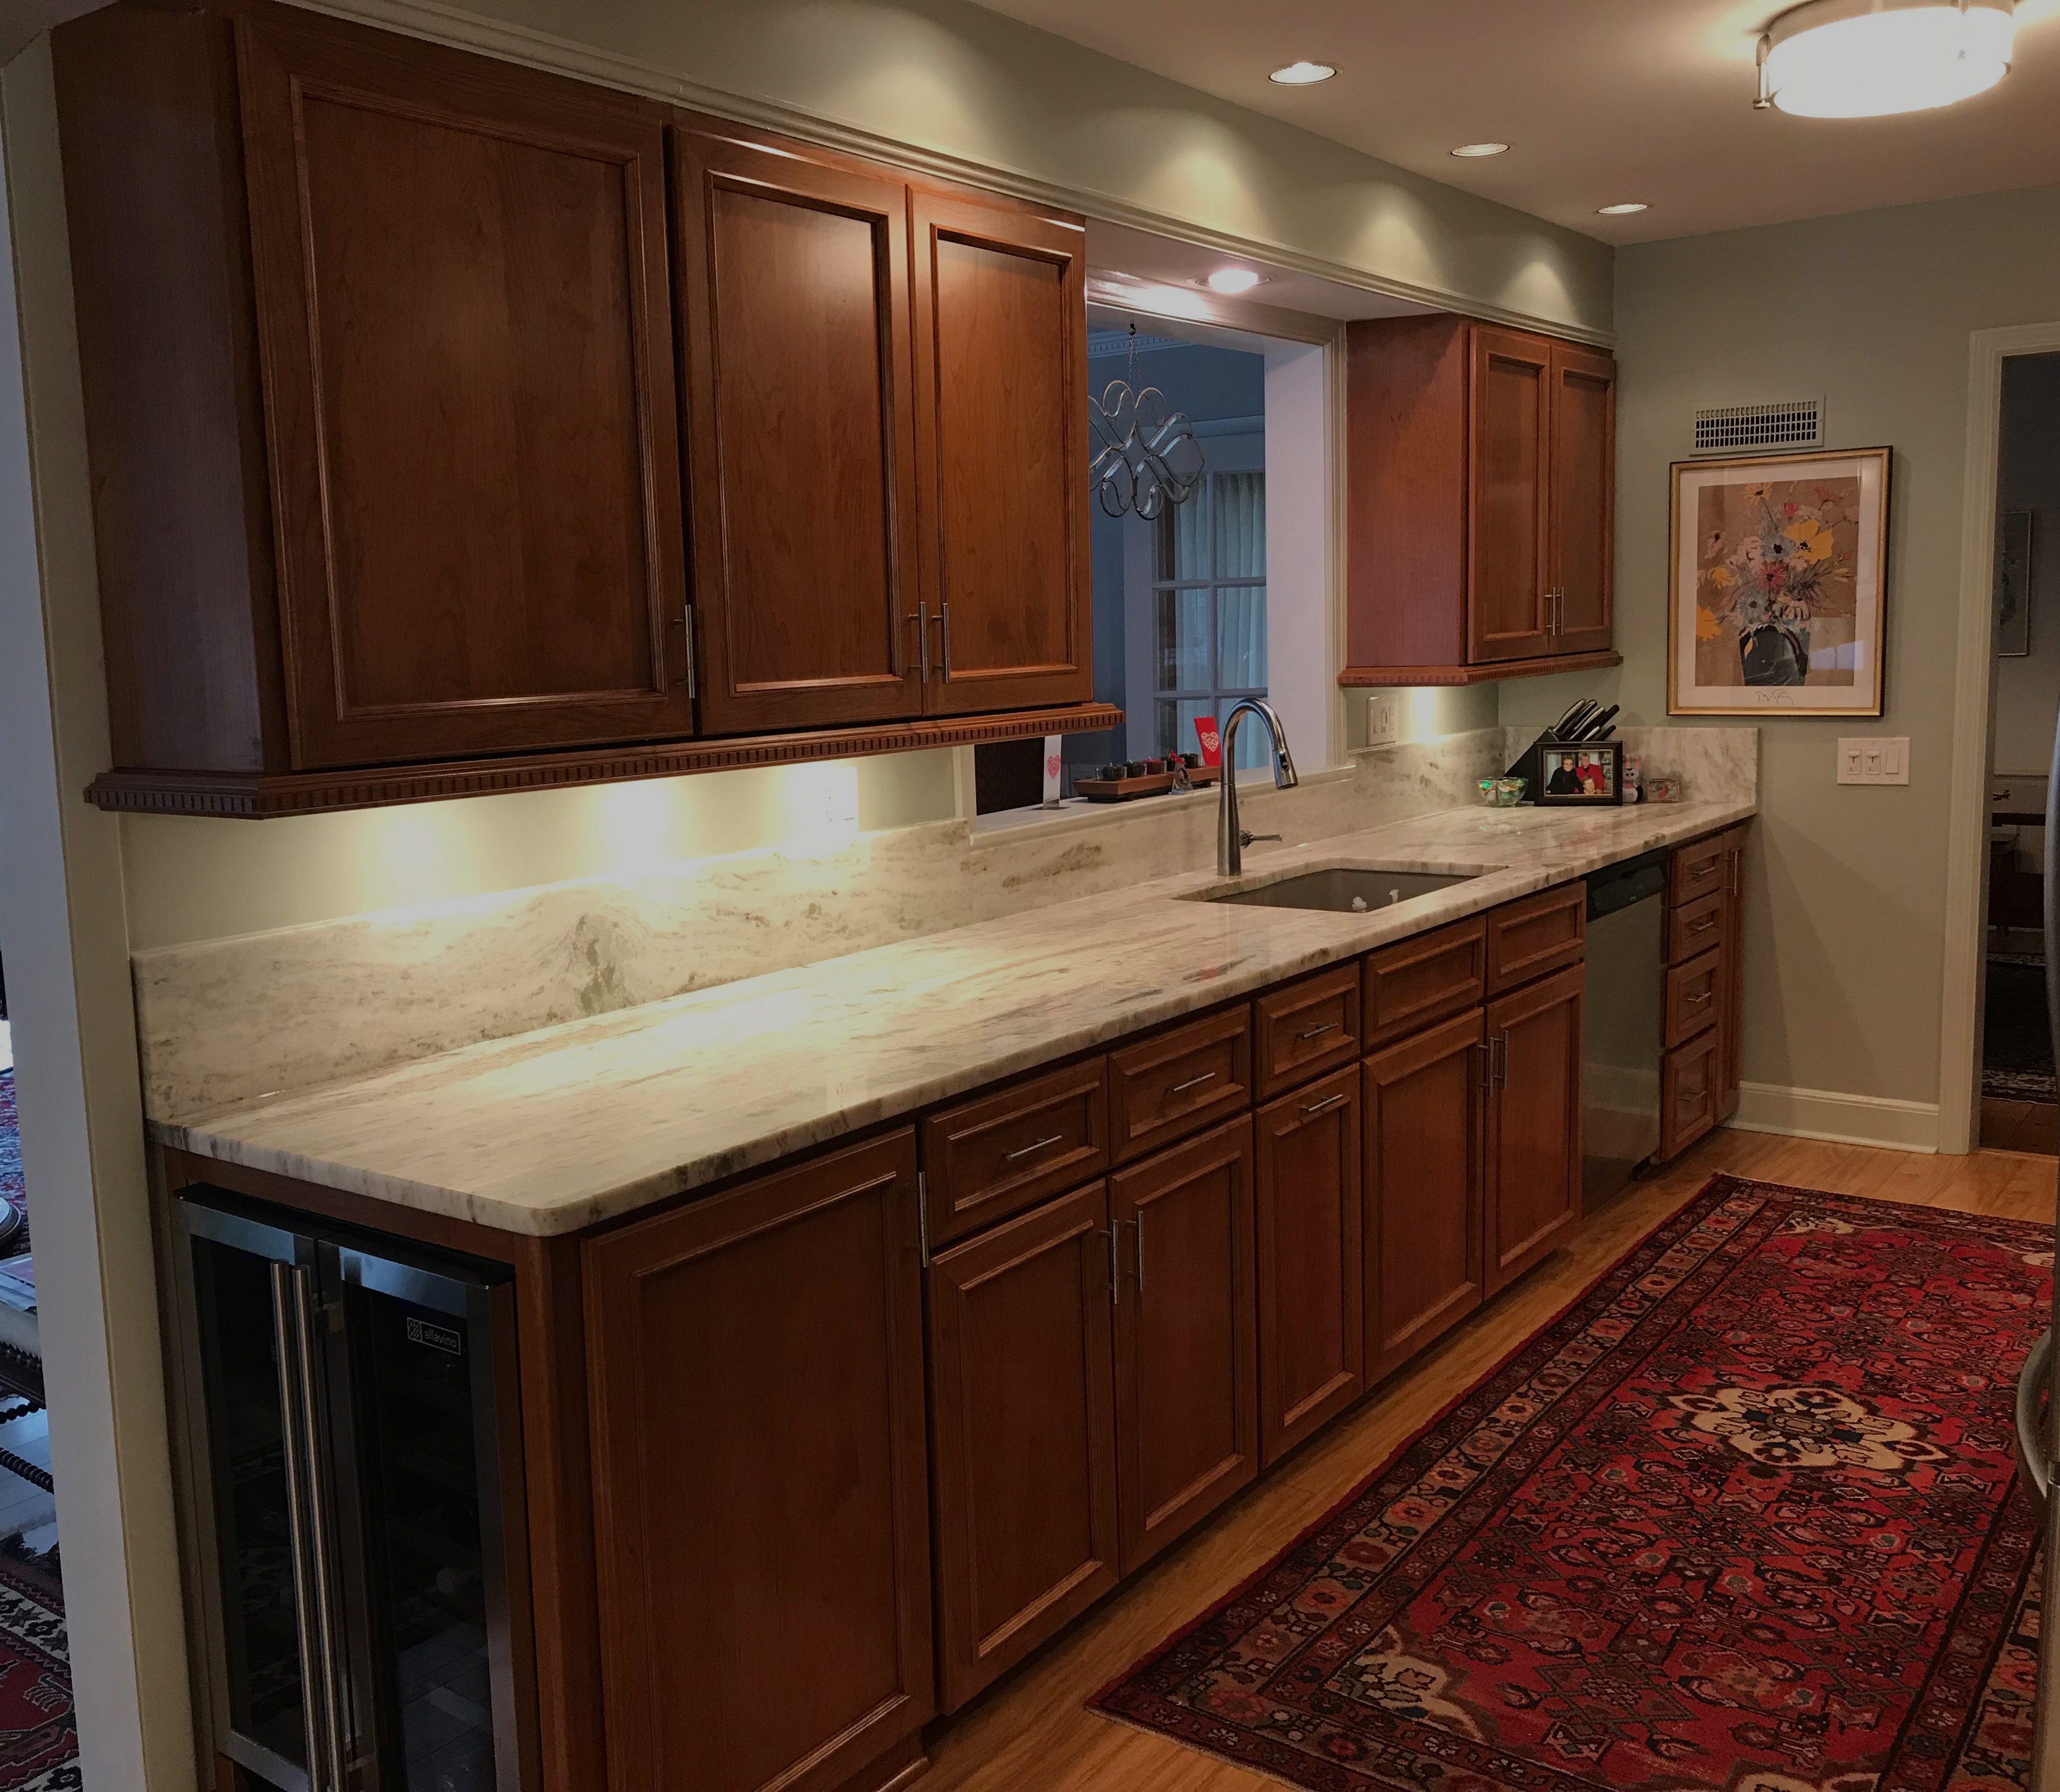 Refacing Old Kitchen Cabinets: Nu-Look Cabinet Refacing Since 1971